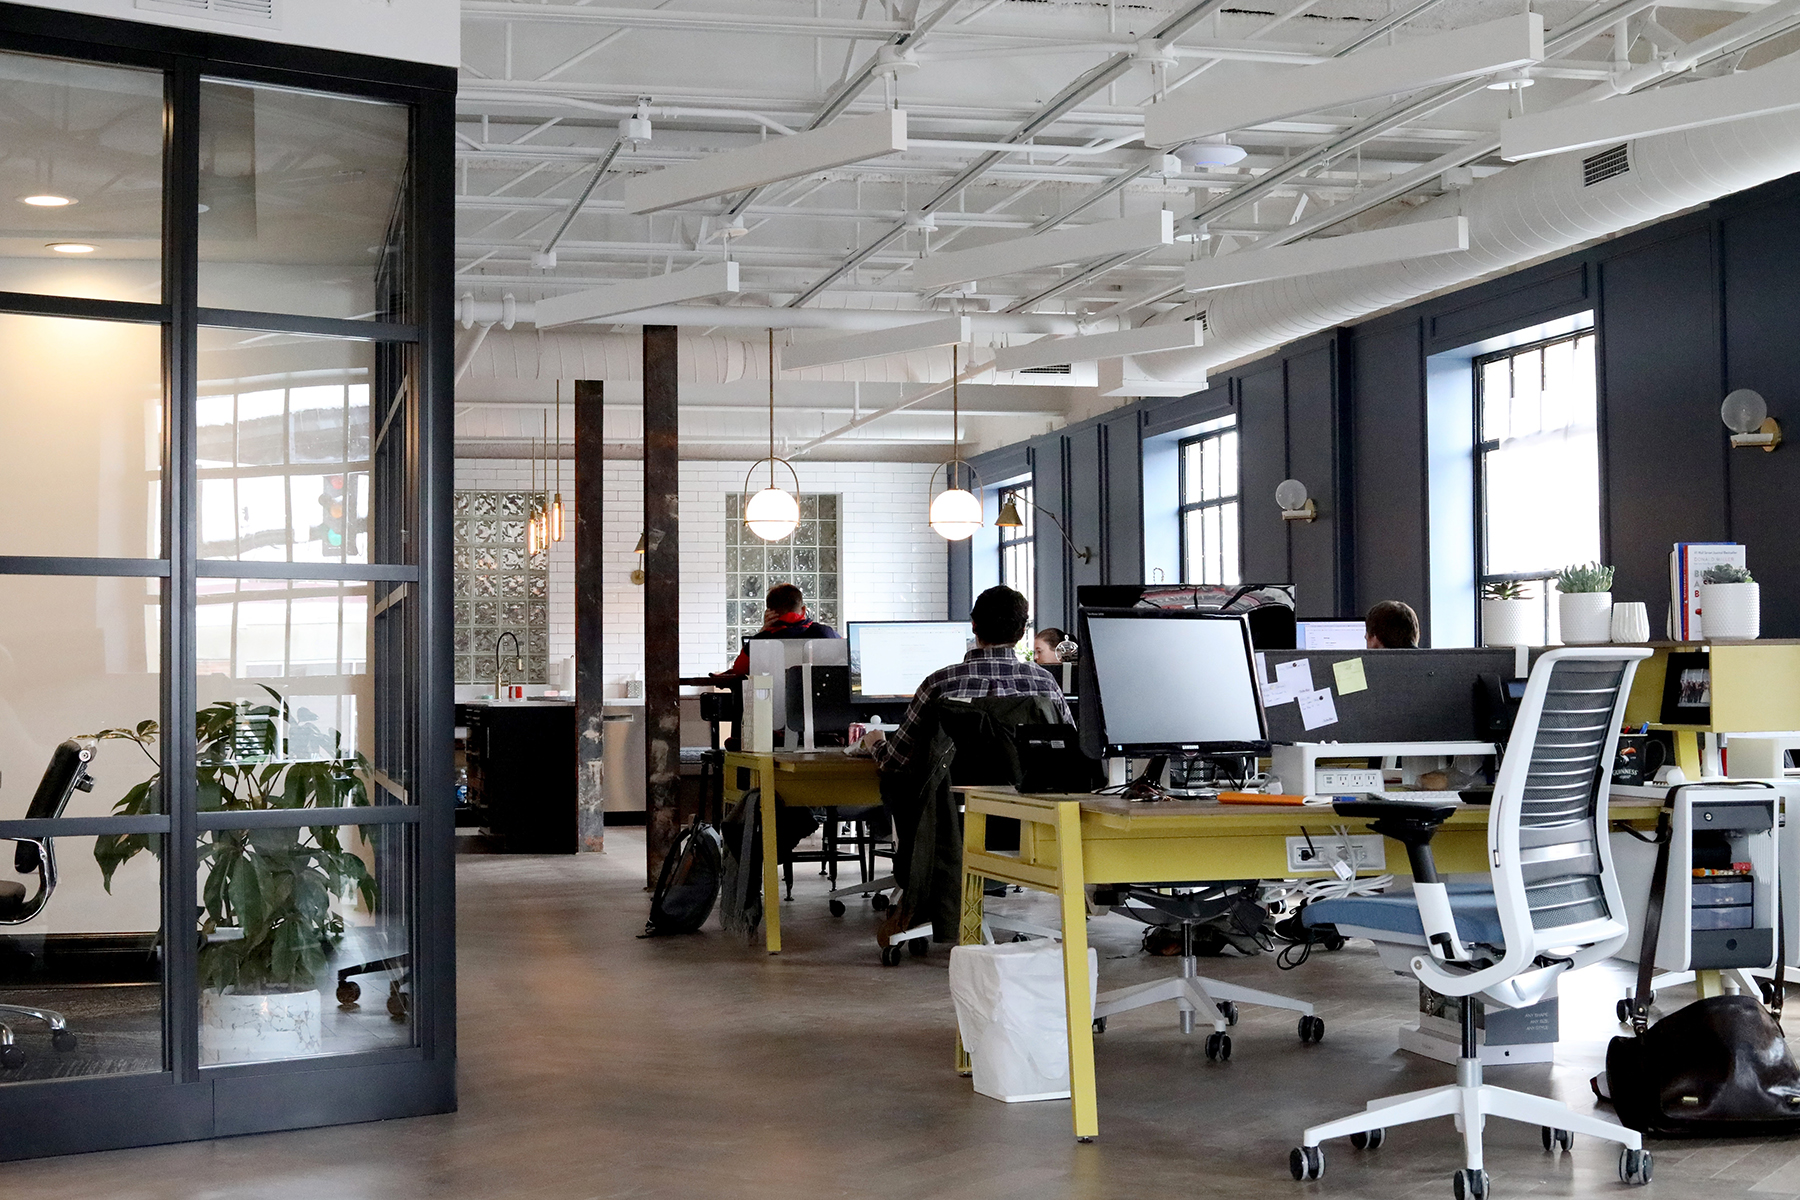 The future of workplaces is centred on the people that make up those spaces, therefore, their wellbeing cannot be overemphasized while designing. Photo by Venveo on Unsplash